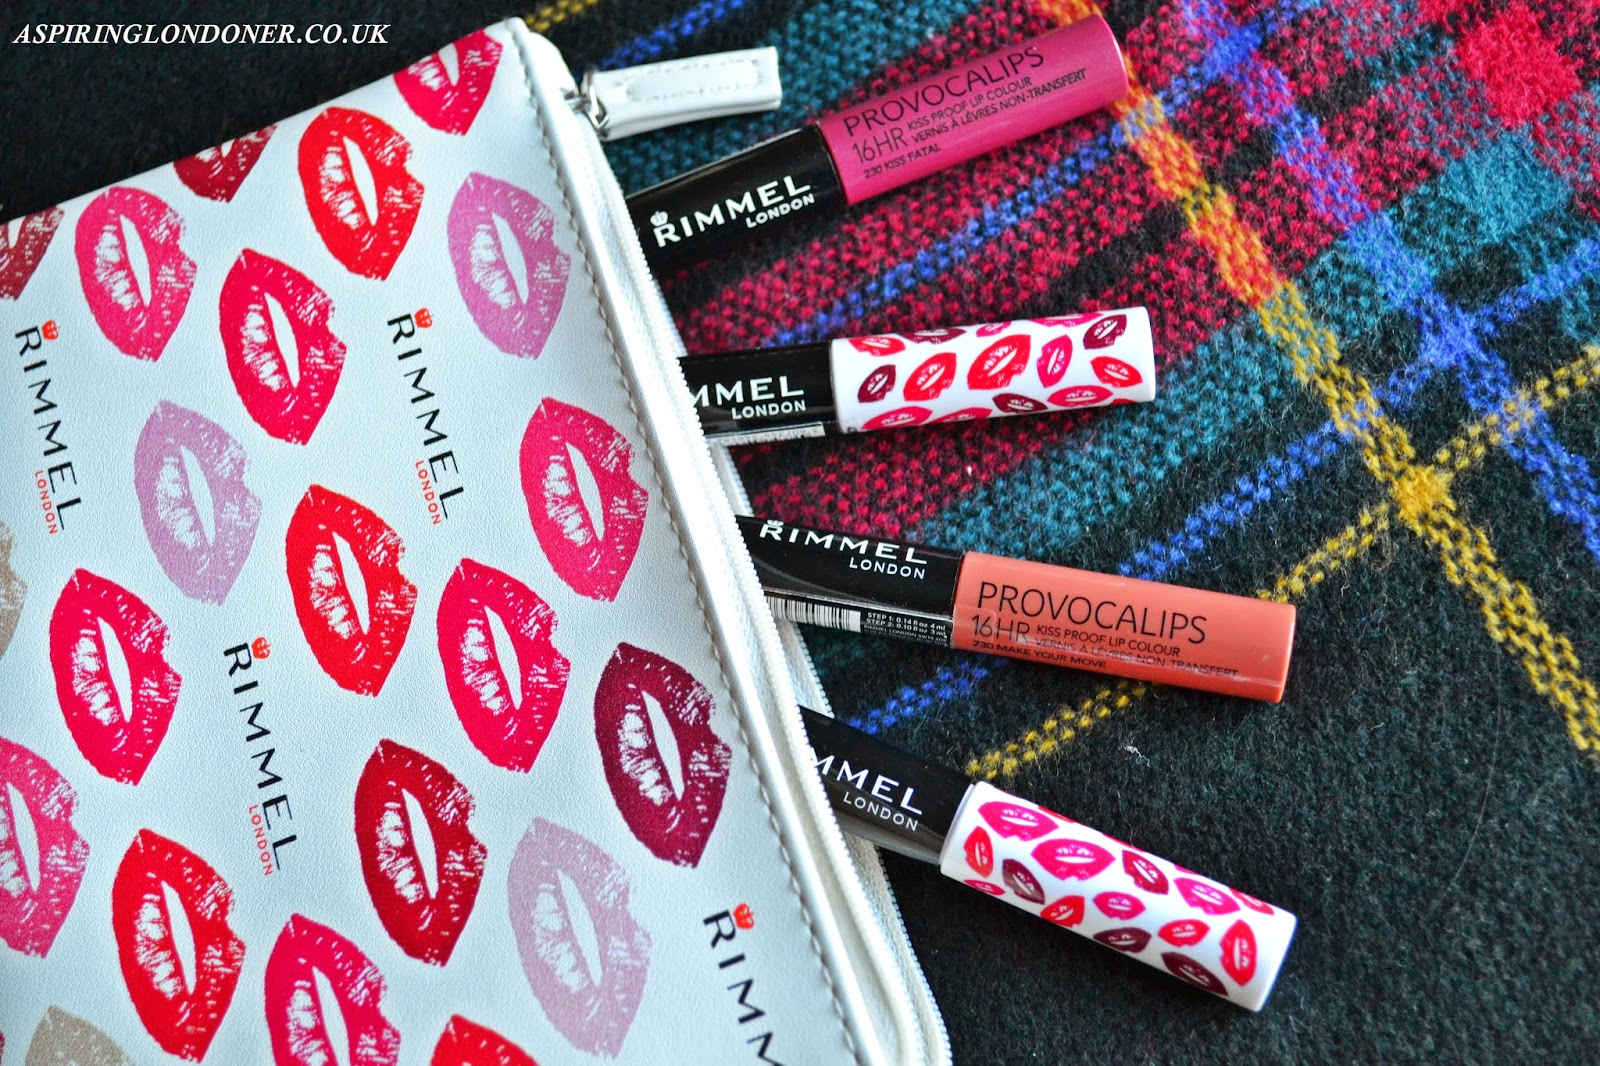 Rimmel Provocalips 16hr Kissproof Lip Colour Review - Aspiring Londoner